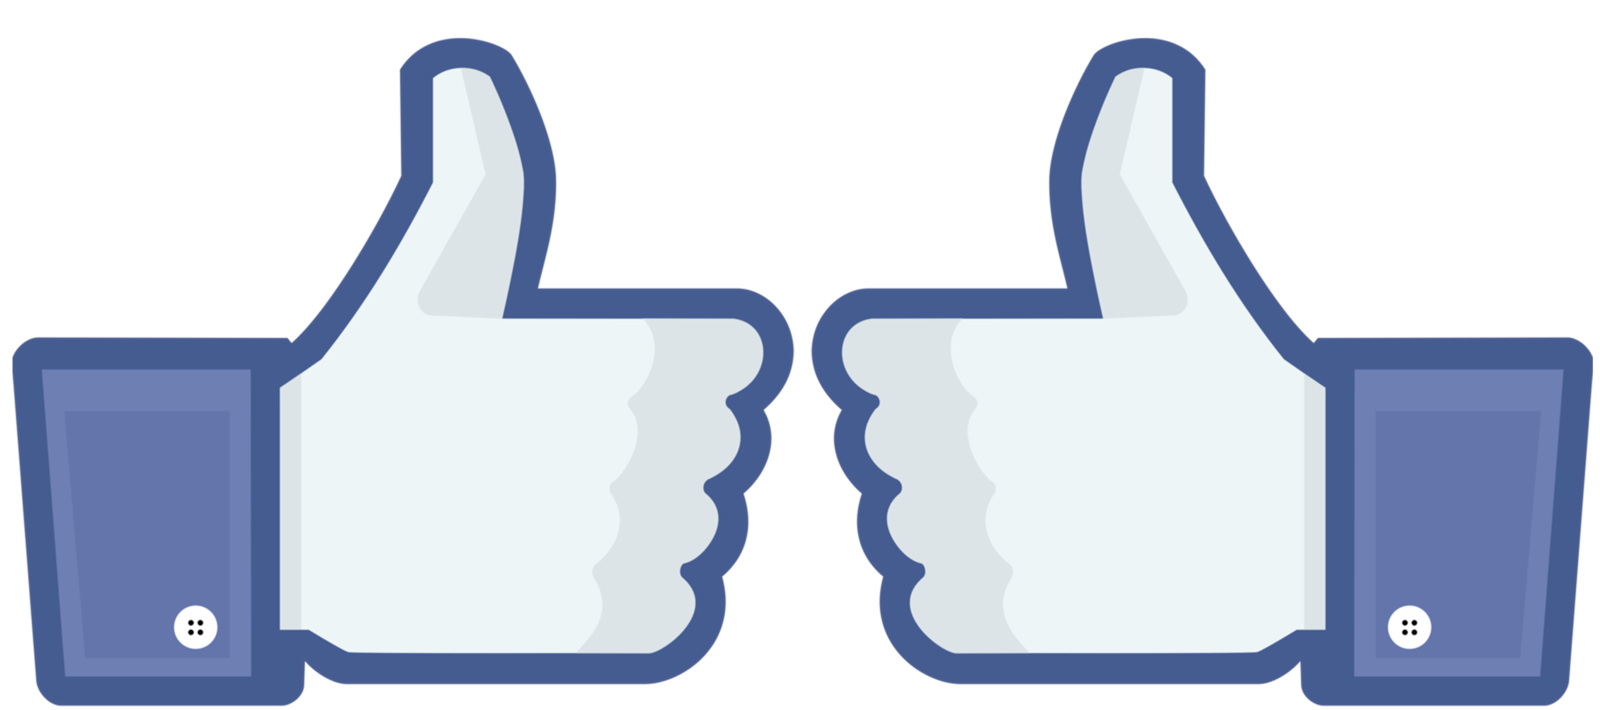 Facebook like logo clipart clipart library library Facebook like logo clipart - ClipartFest clipart library library